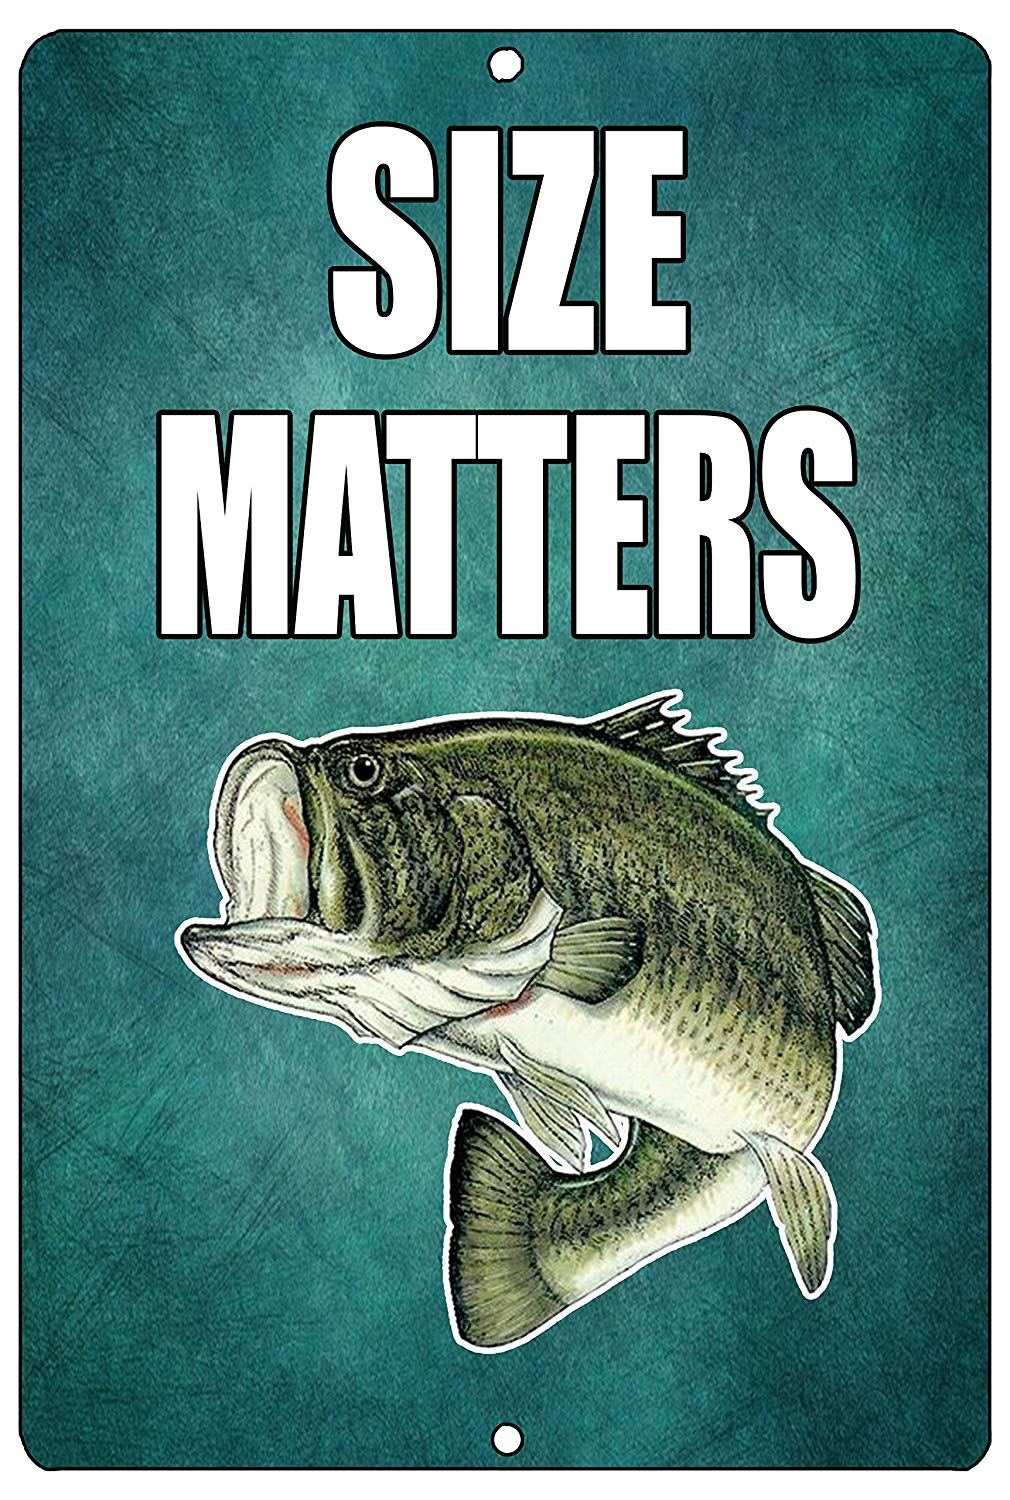 Funny Size Matters Fishing Metal Tin Sign Wall Decor Bass Fish Man Cave Bar